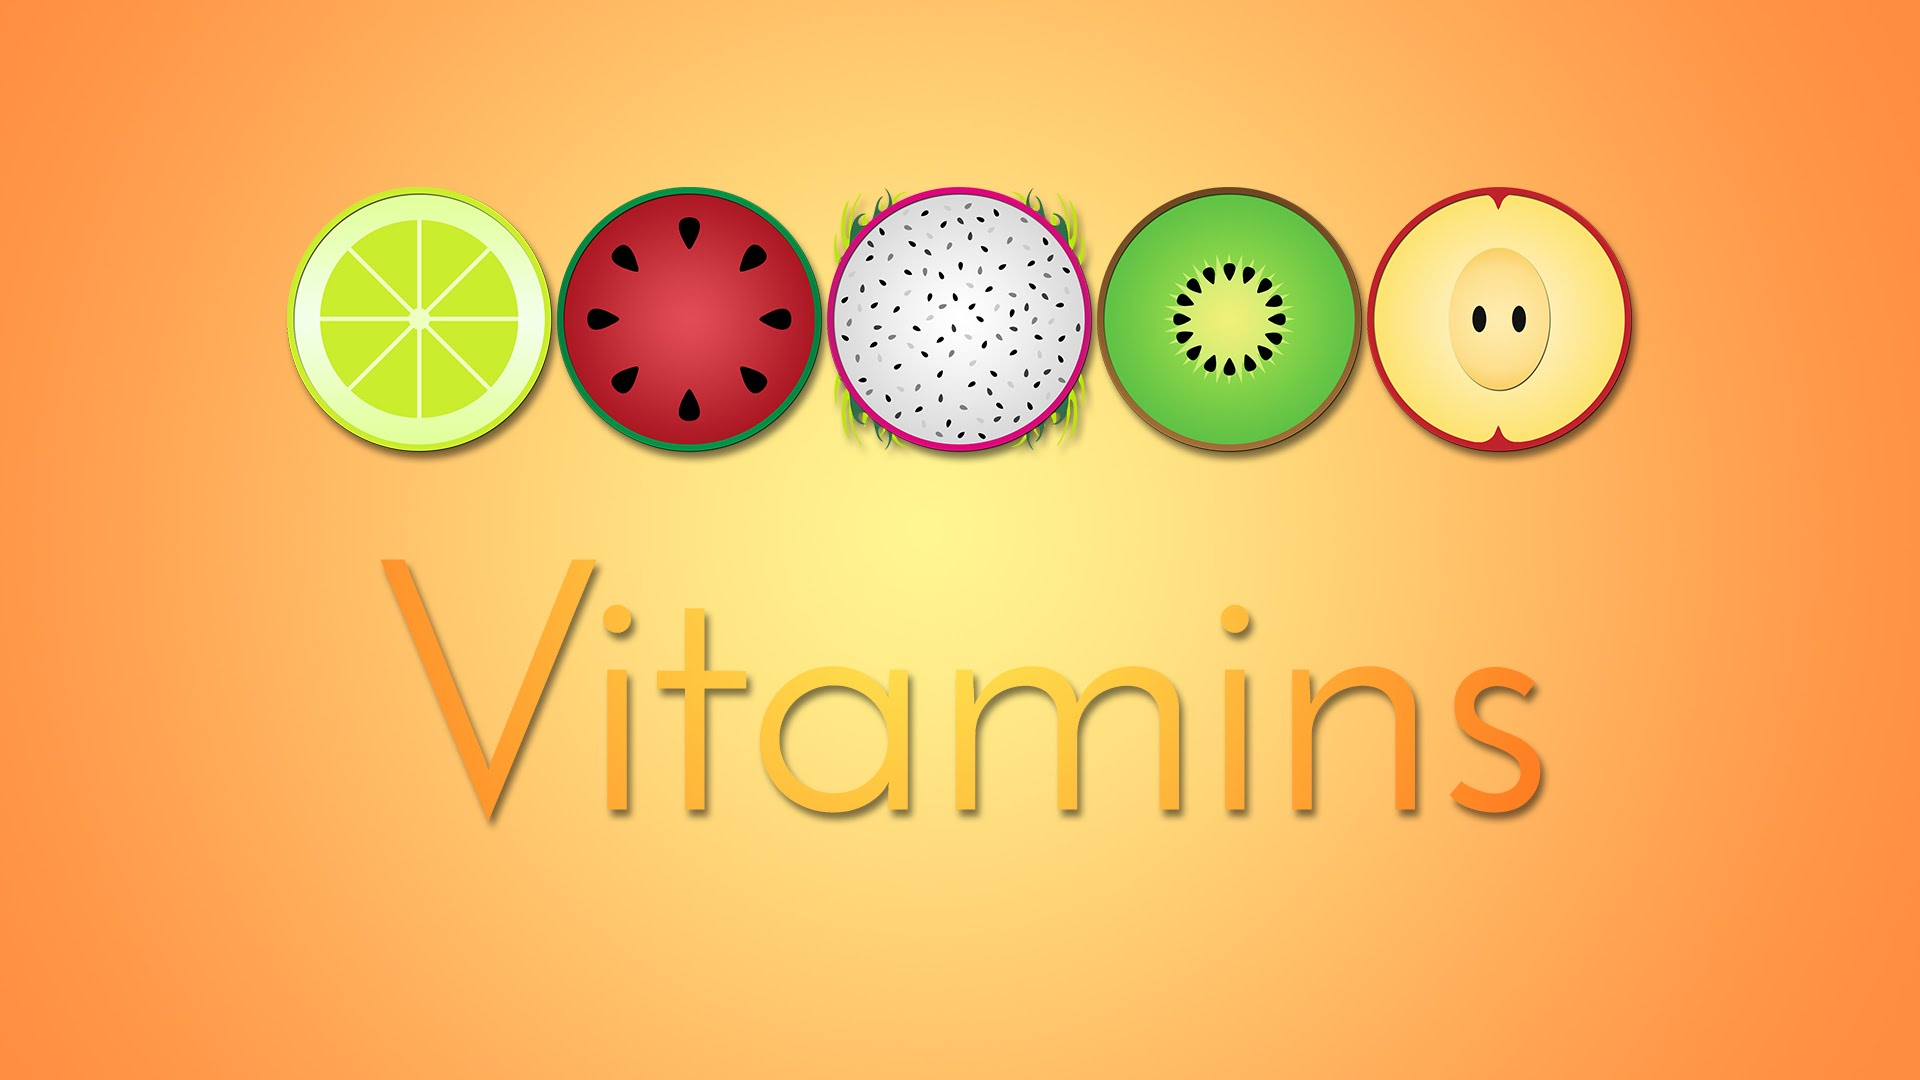 Drawn vegetables animation Expression Vector Animated Fruit Fruit